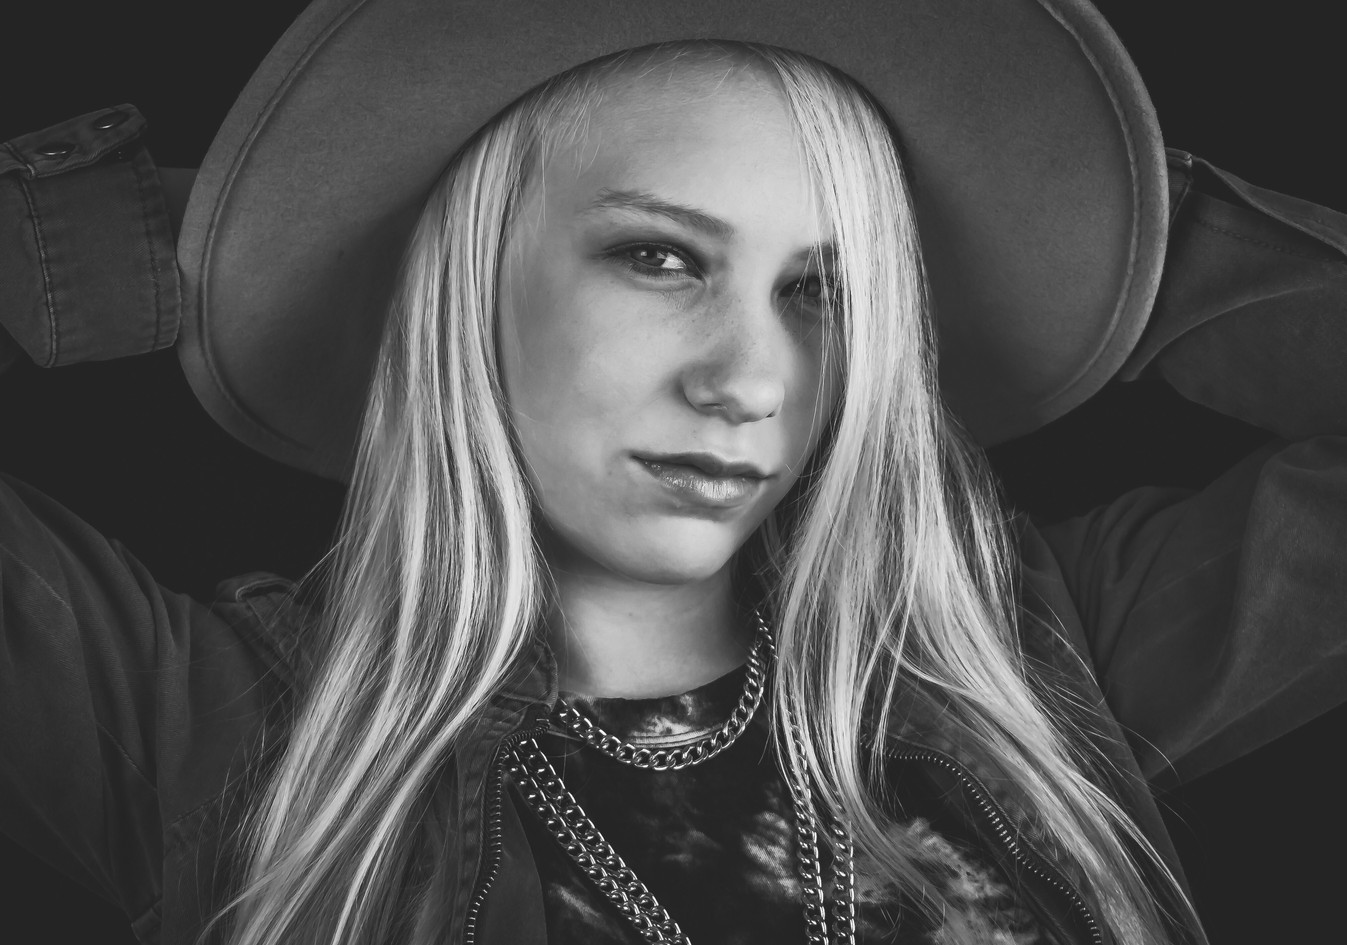 PHOTOGRAPHY OAK HARBOR WHIDBEY ISLAND SEATTLE PORTRAITS SENIOR PICTURES